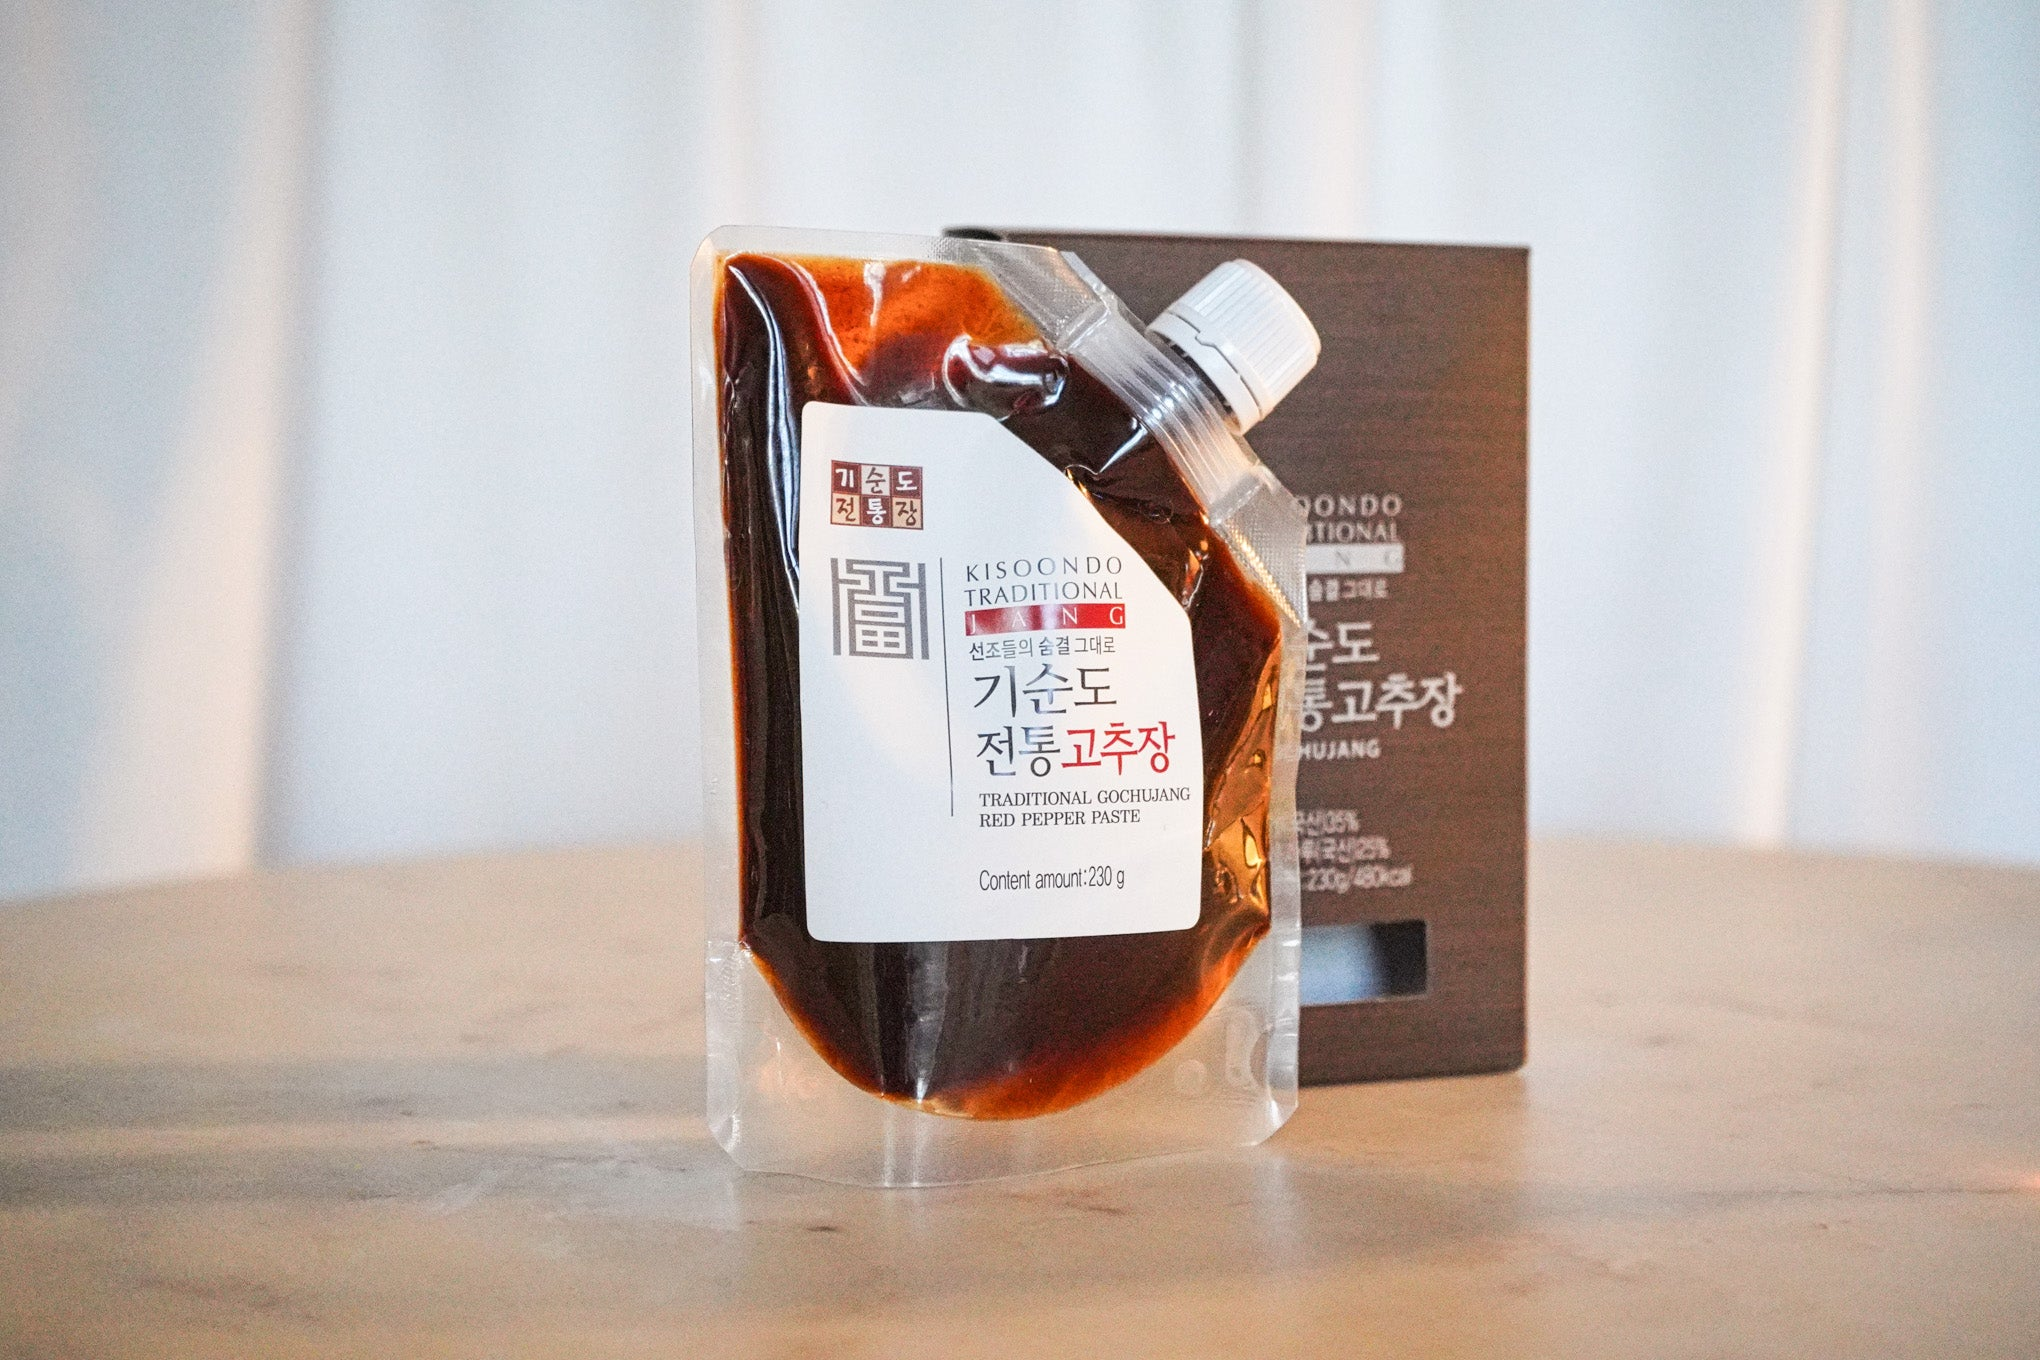 kisoondo traditional gochujang in plastic bag with brown retail box in background